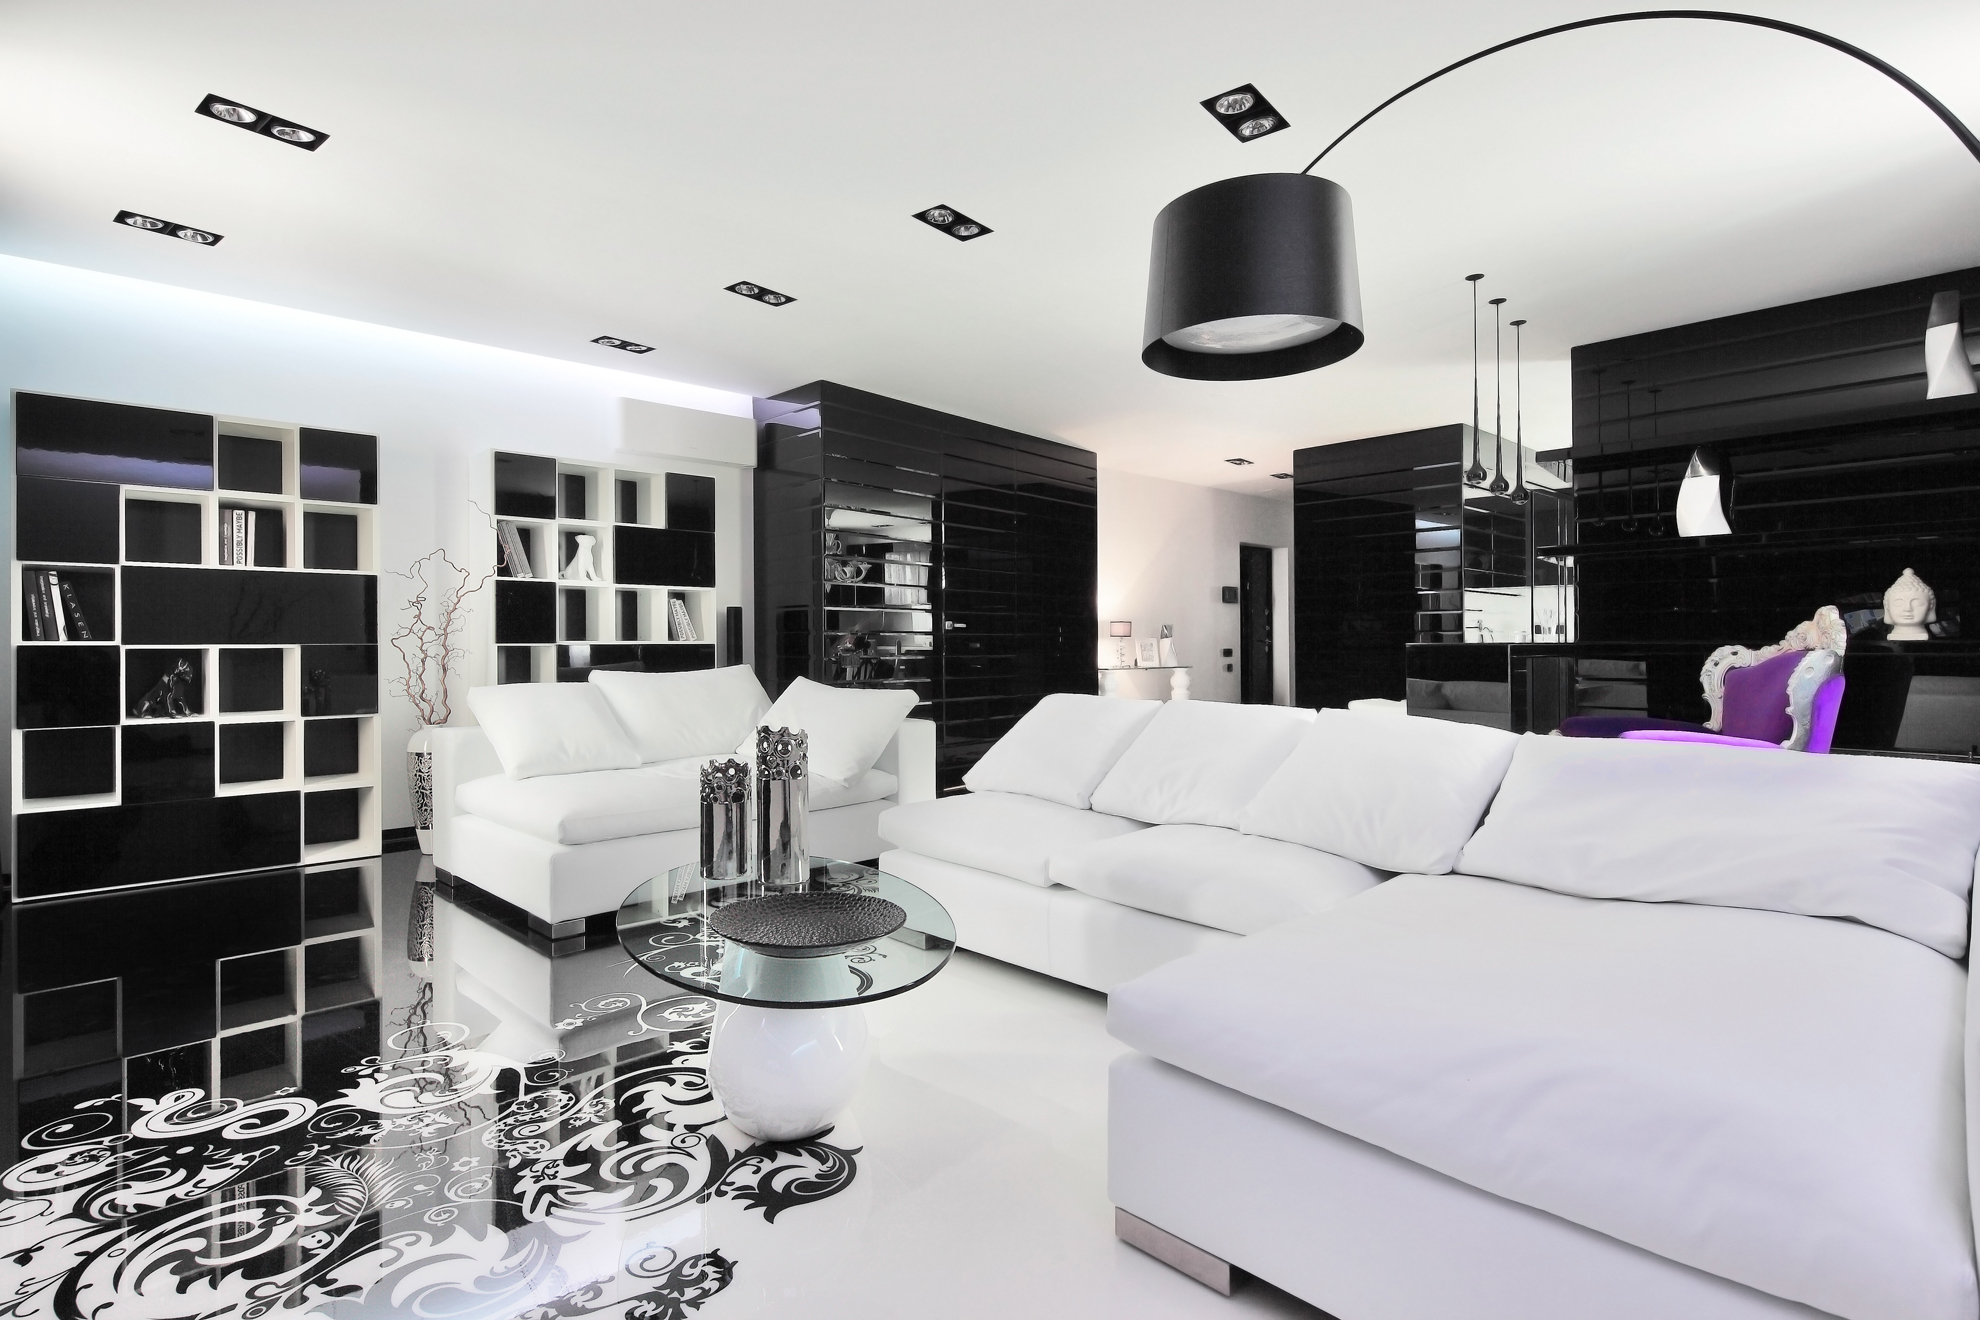 black and white graphic decor. Black Bedroom Furniture Sets. Home Design Ideas